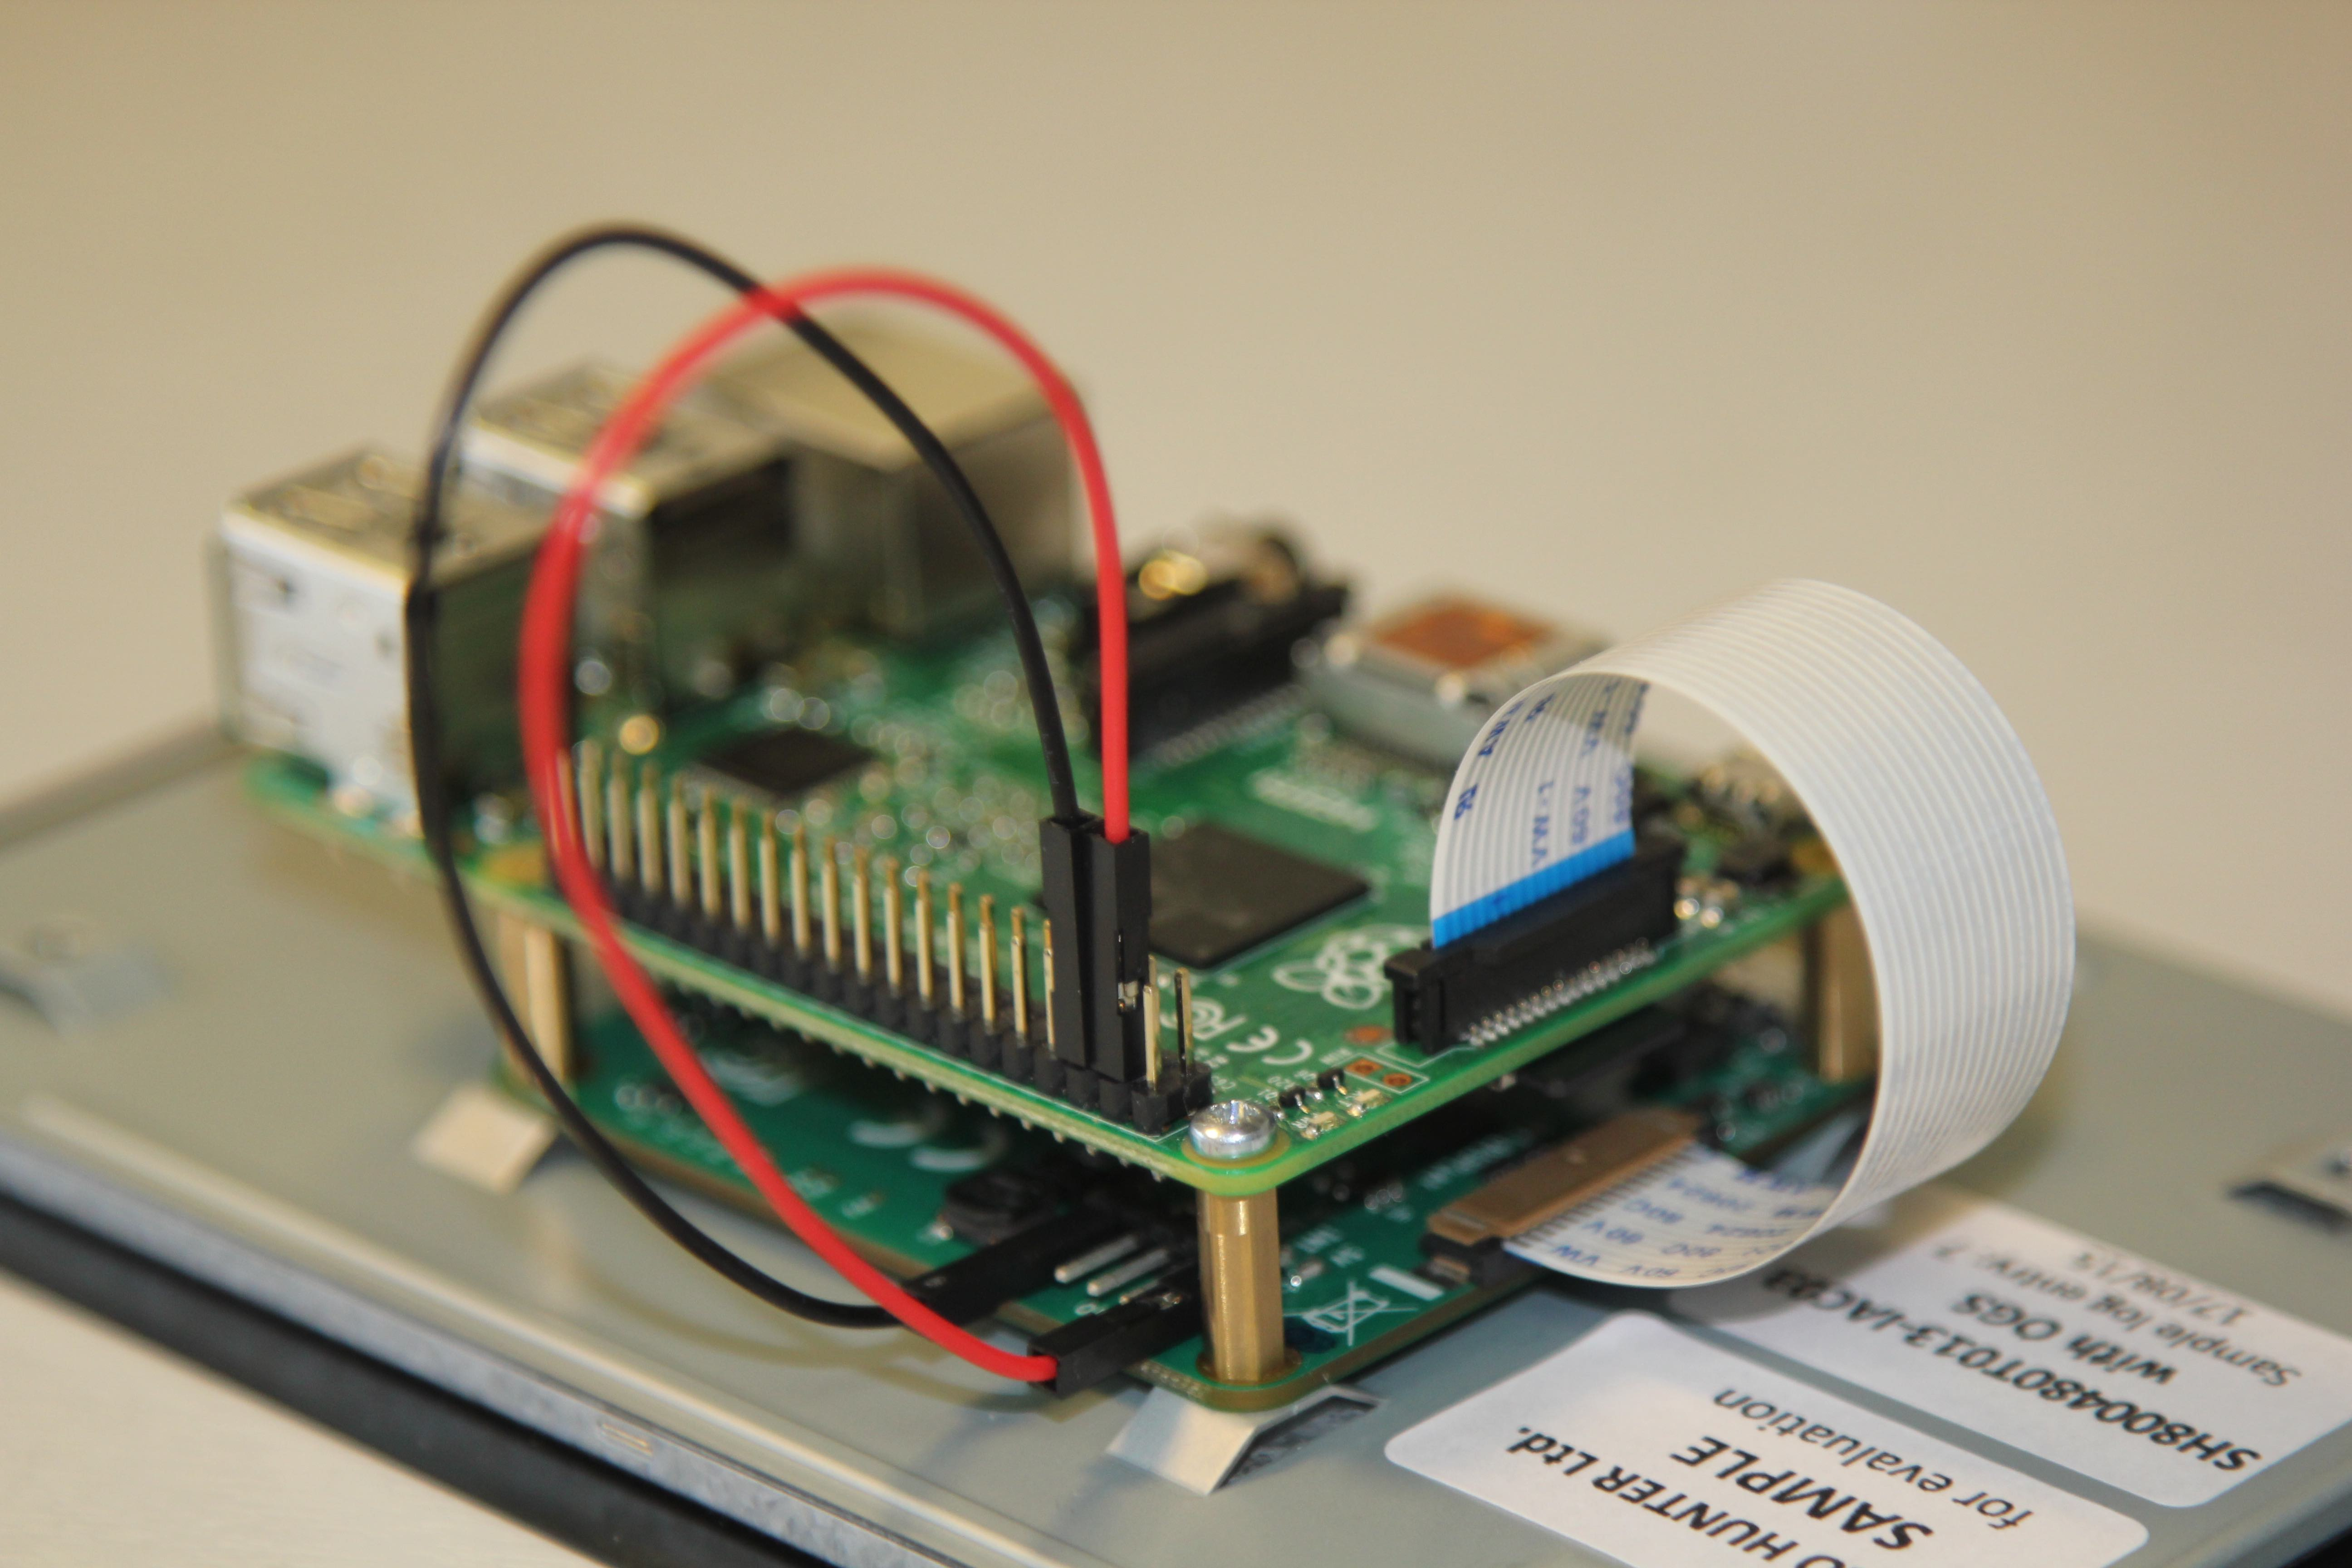 Don T Try This At Home How Not To Hack The Raspberry Pi